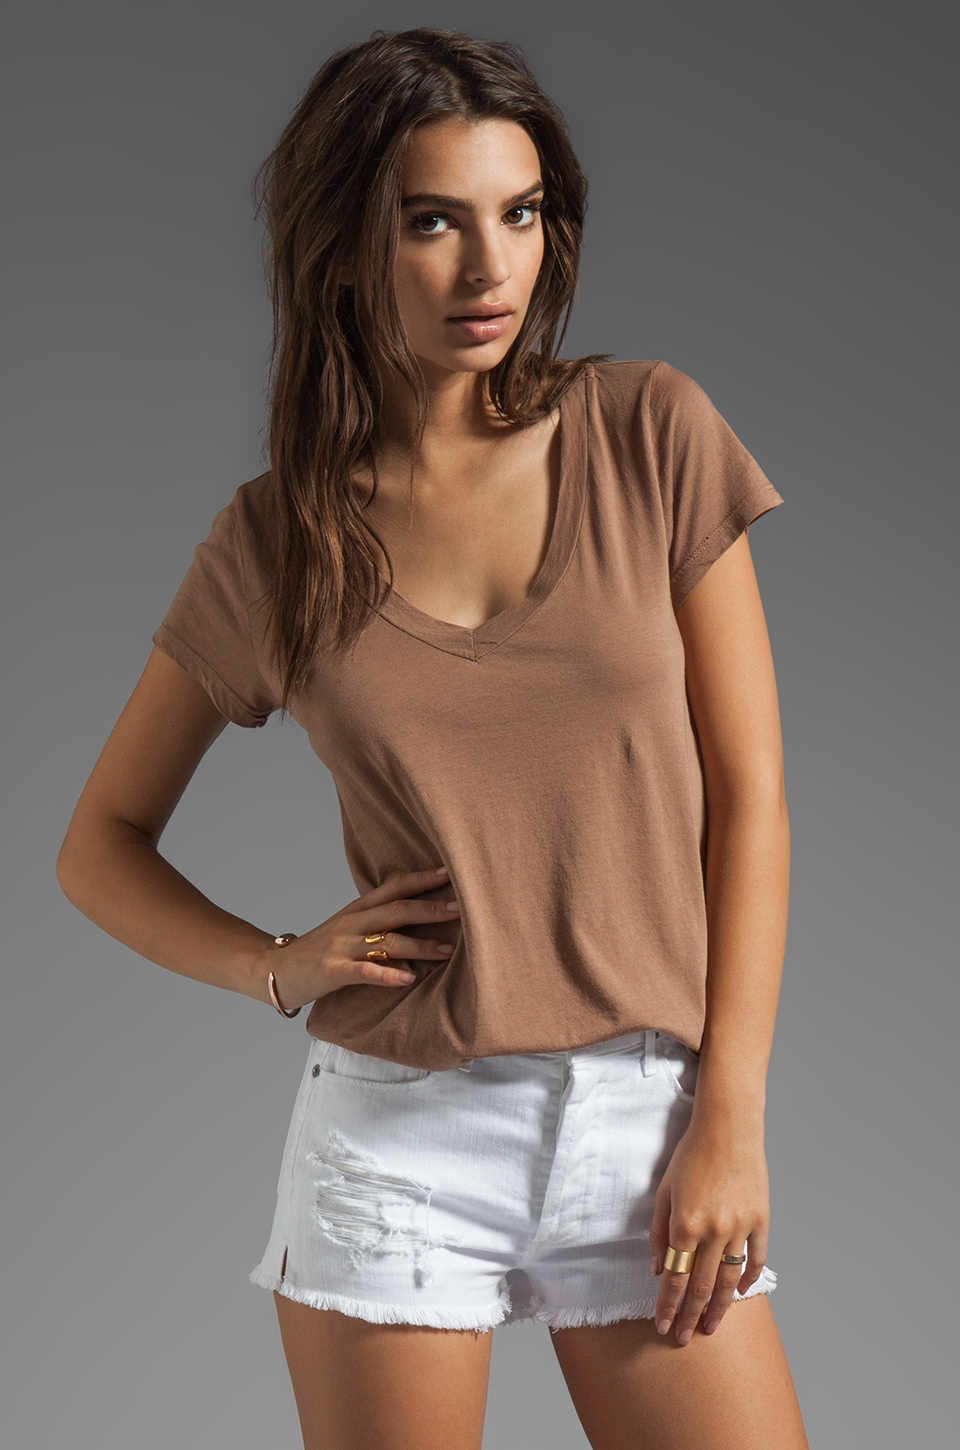 LA Made Micromodal Jersey Low V Neck BF Tee in Iced Coffee